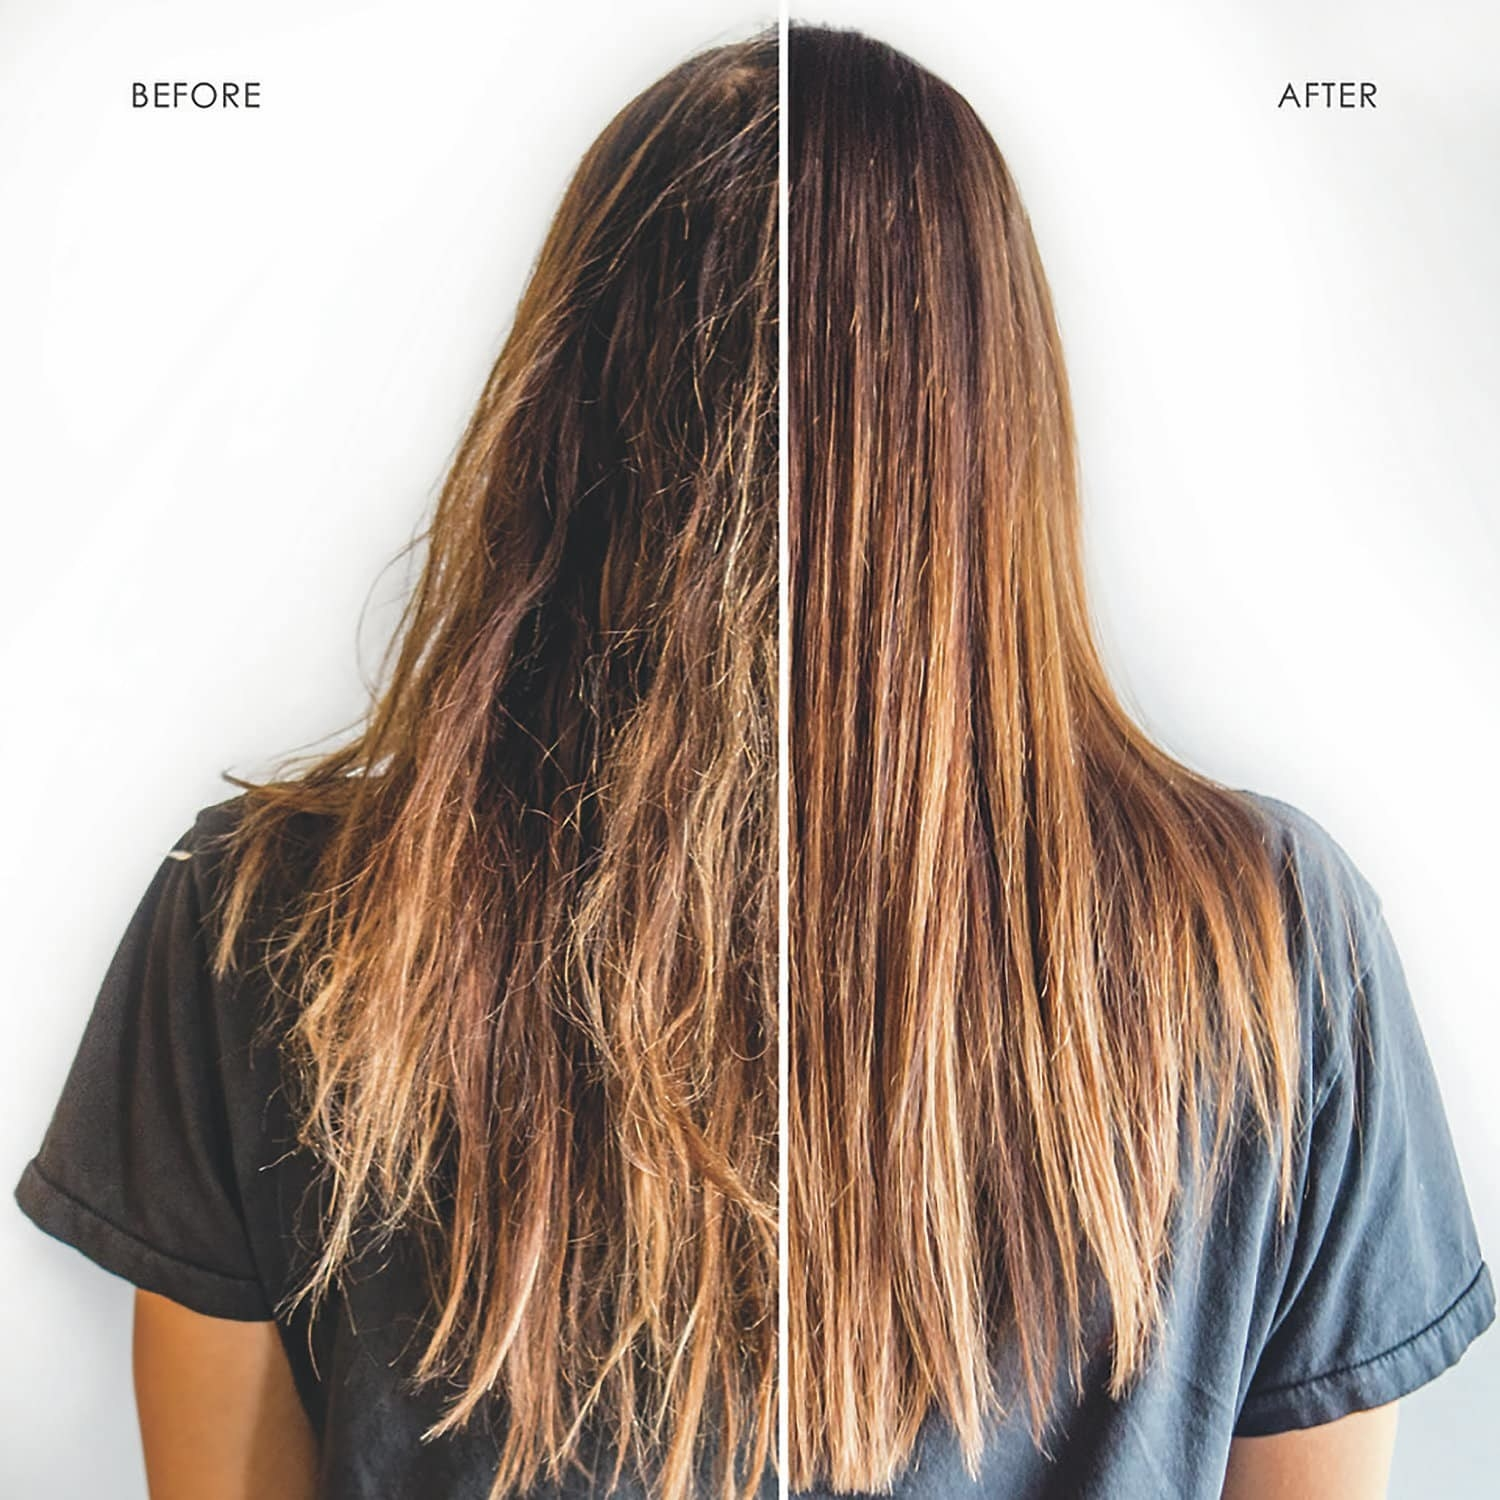 How to keep your hair straight overnight when wet